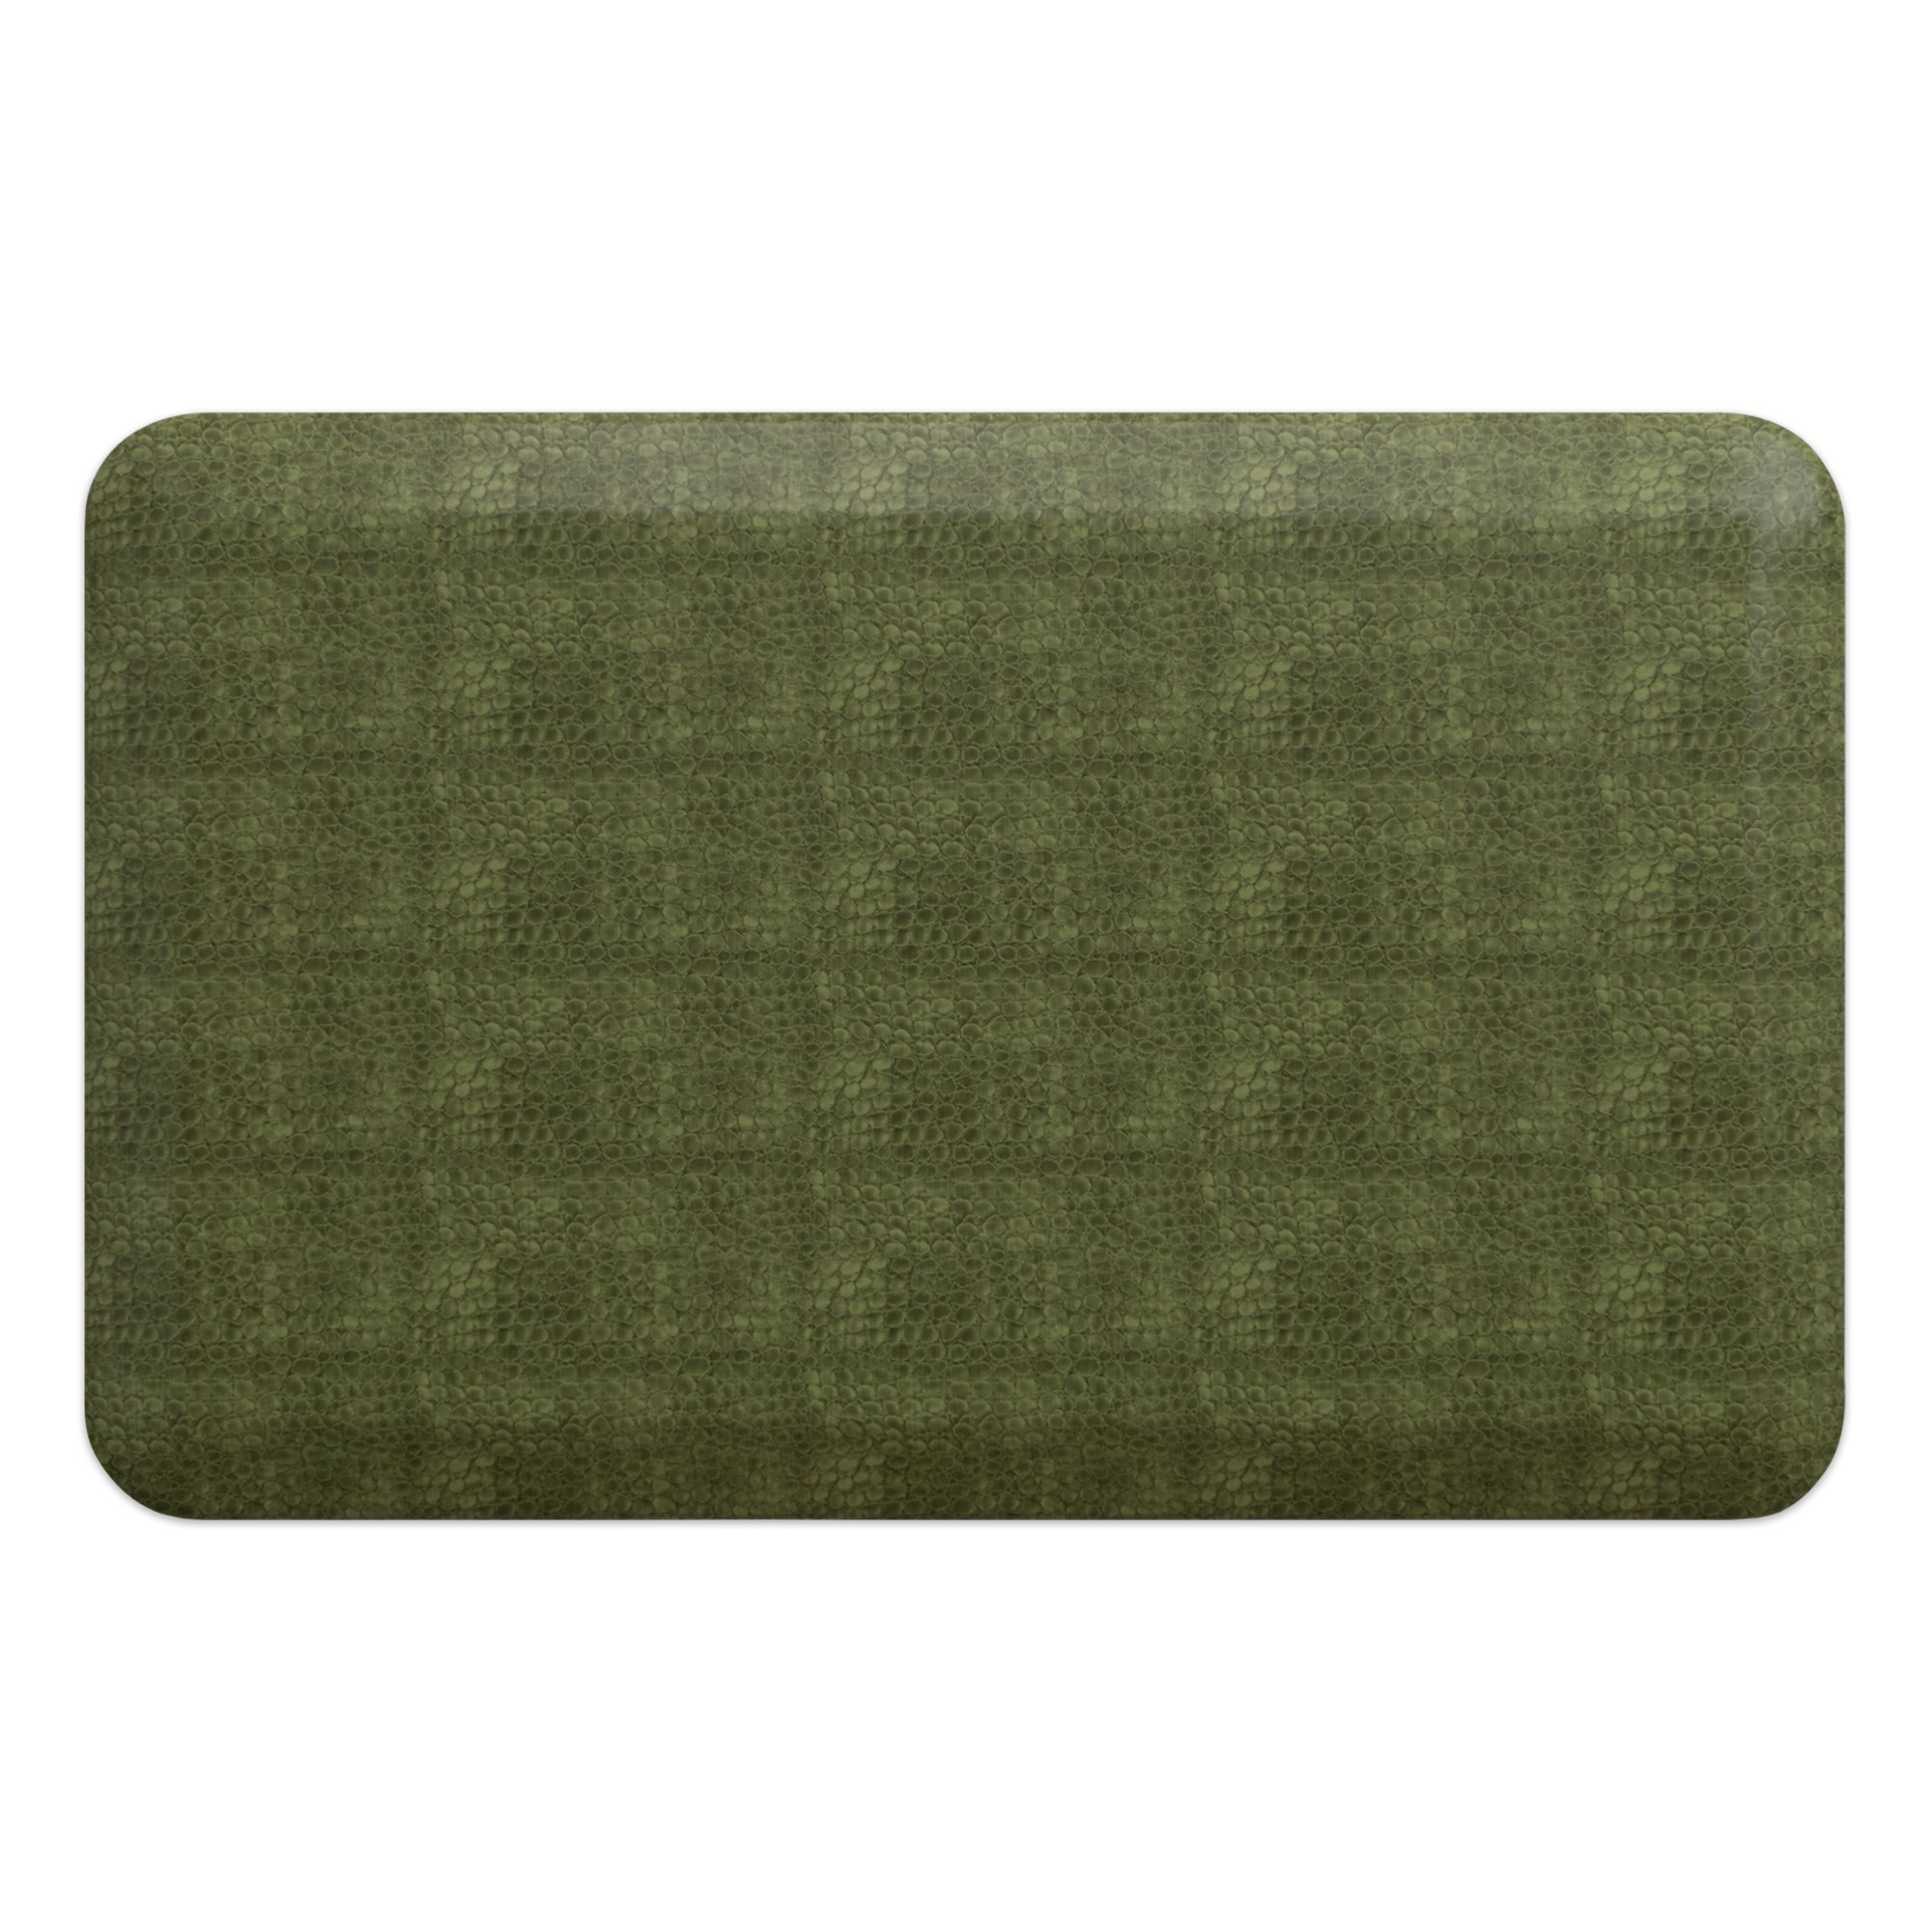 """NewLife by GelPro Anti-Fatigue Designer Comfort Kitchen Floor Mat, 20x32"""", Pebble Palm Stain Resistant Surface with 3/4"""" Thick Ergo-foam Core for Health and Wellness by NewLife by GelPro"""